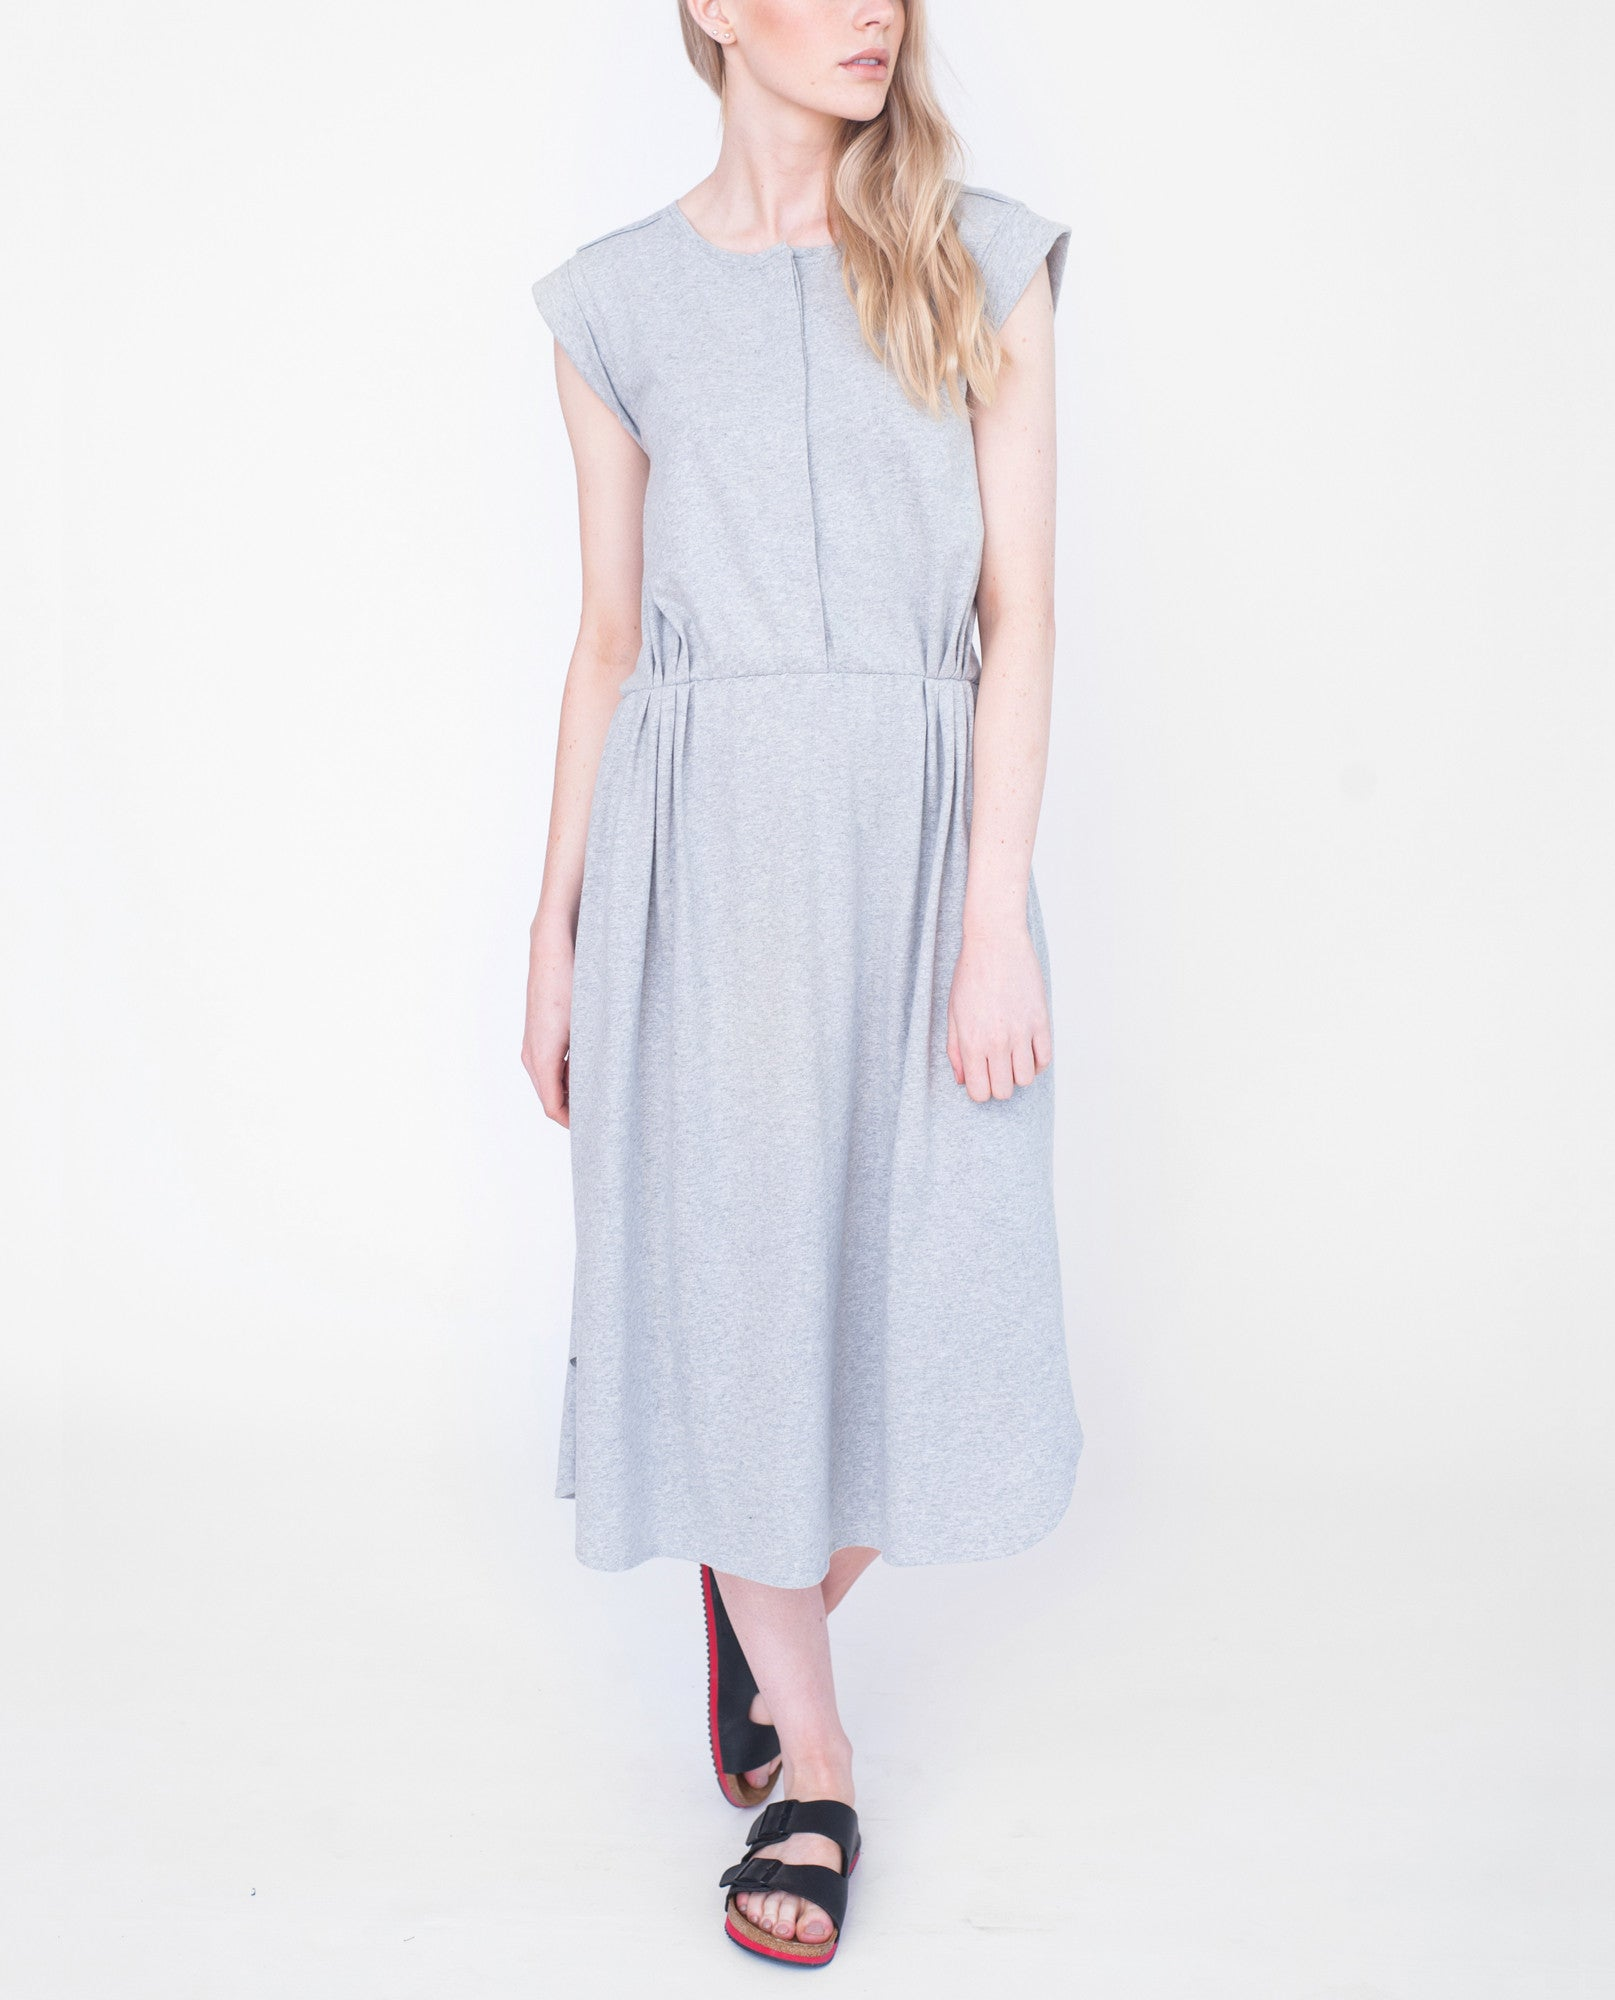 SCARLETT Organic Cotton Dress In Light Grey from Beaumont Organic